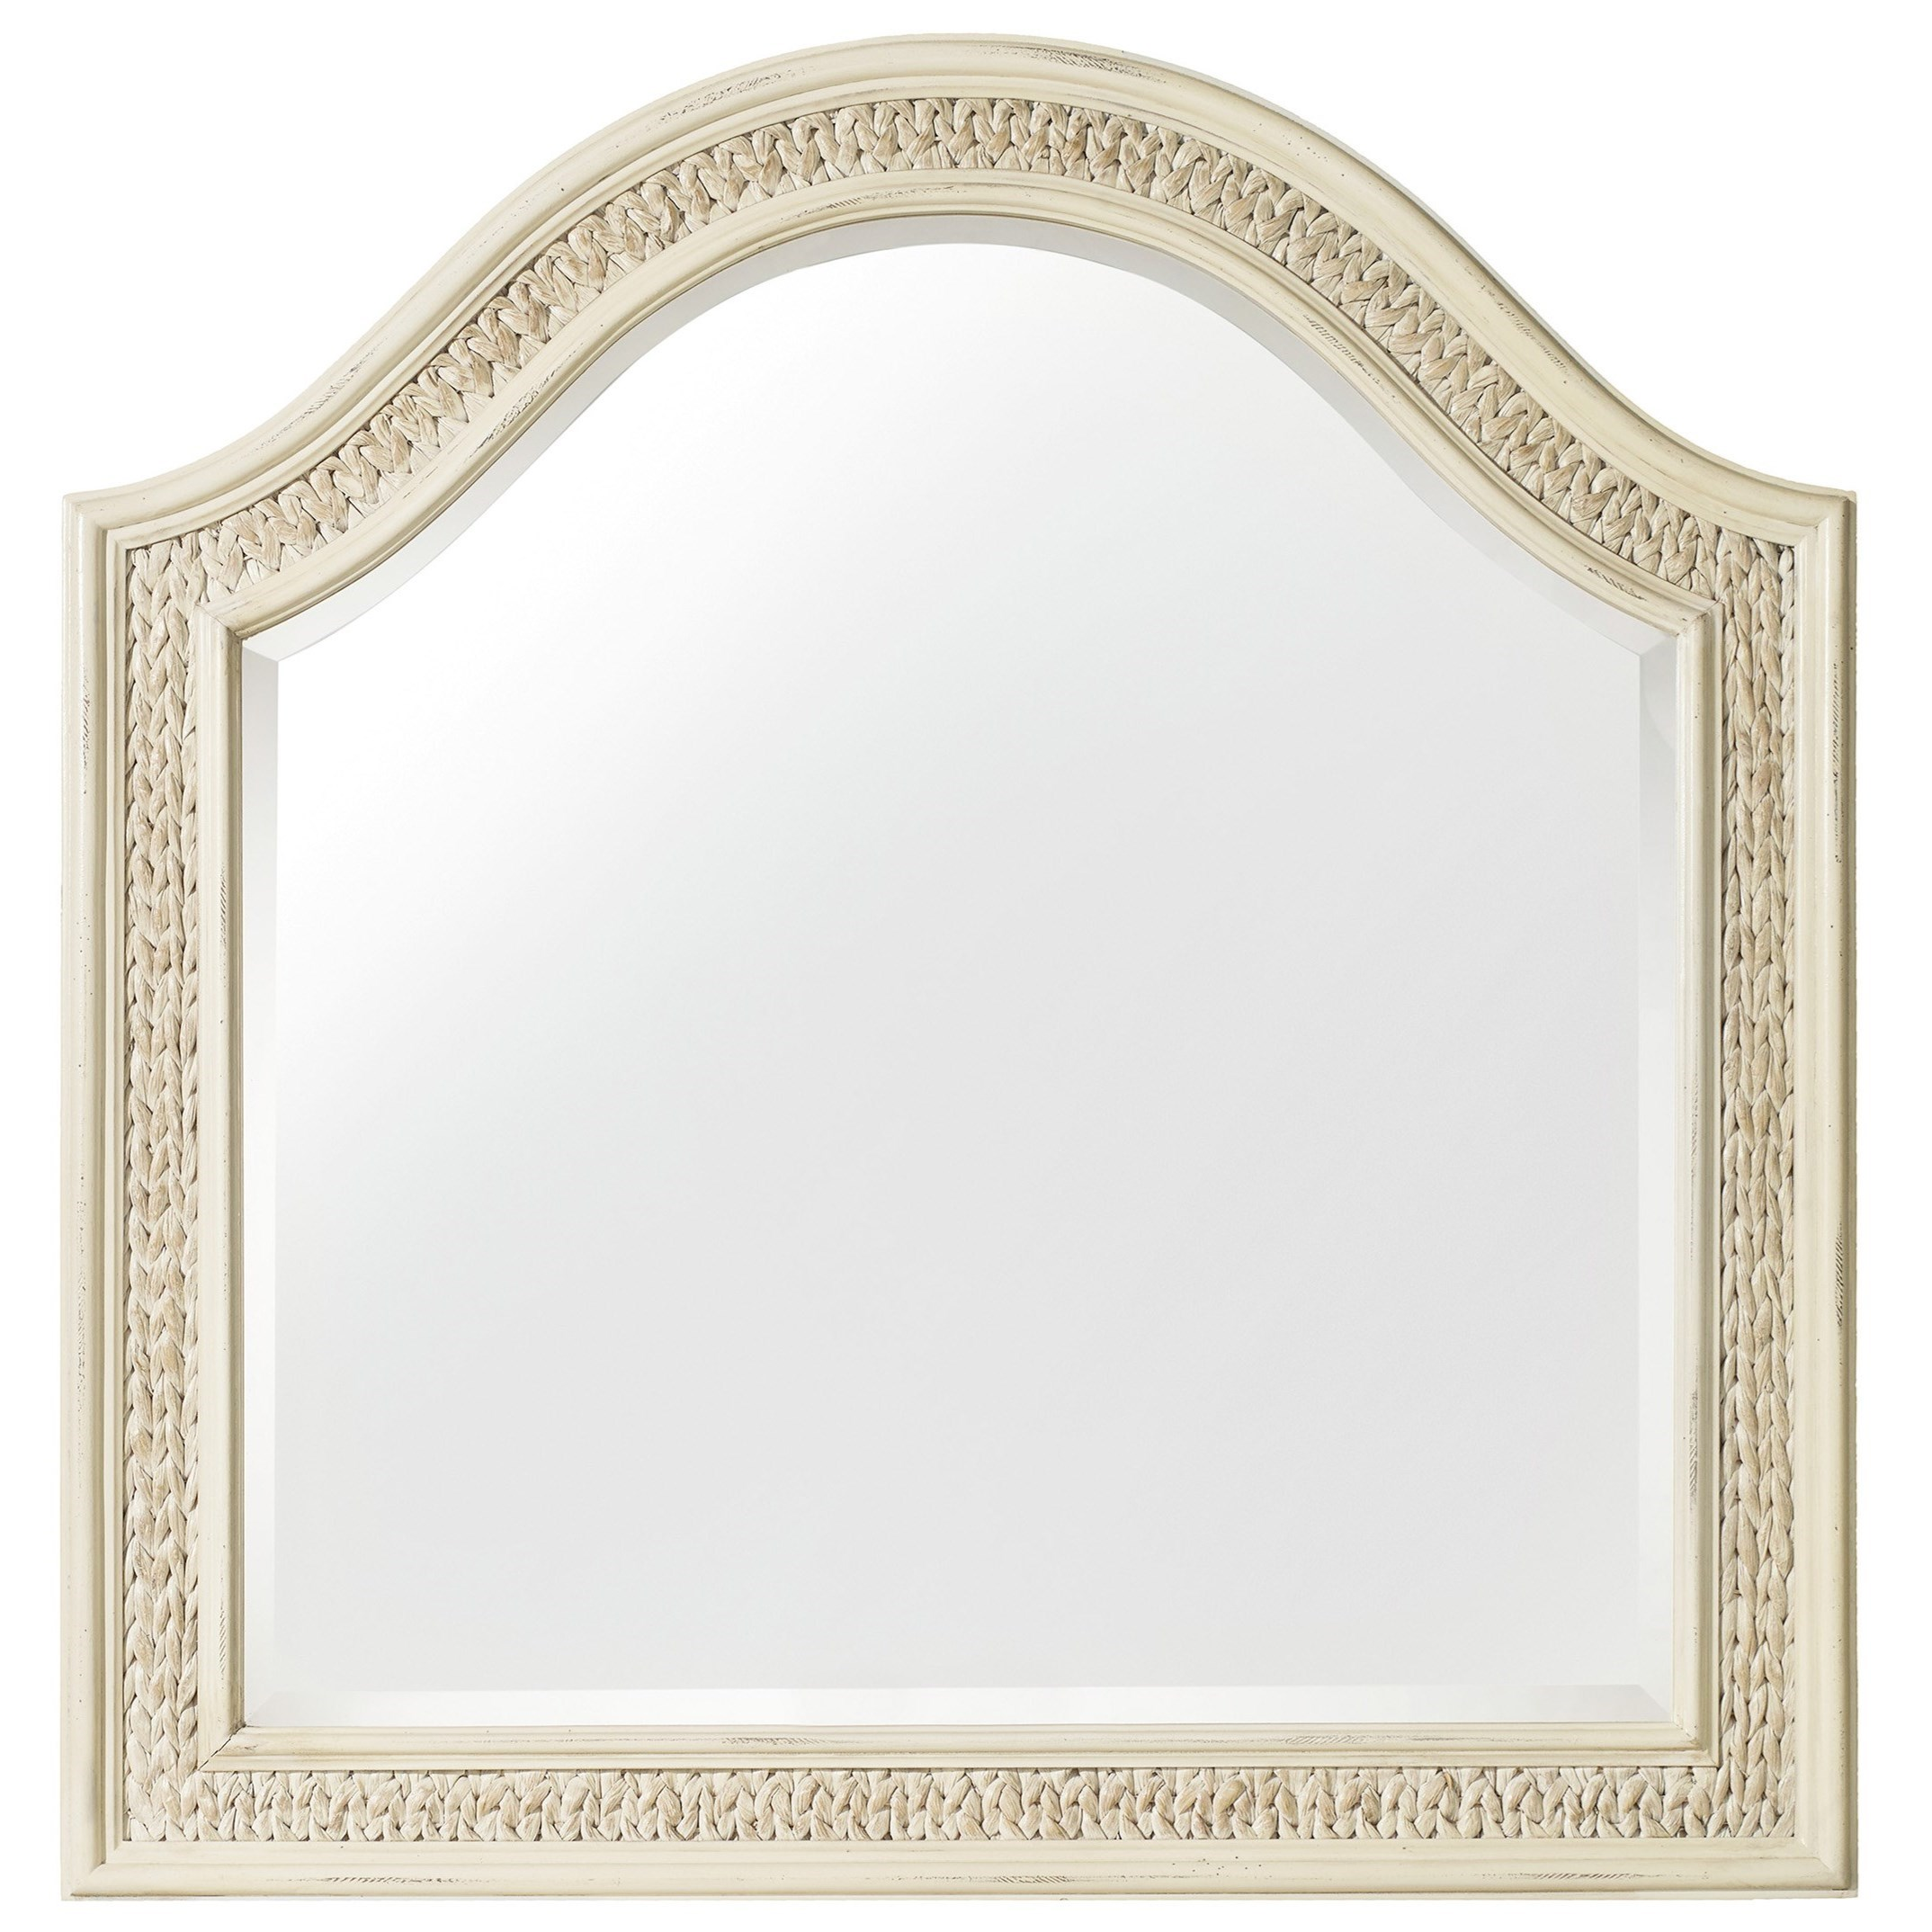 Hooker Furniture Sandcastle Mirror with Woven Sea Grass - Item Number: 5900-90004-WH